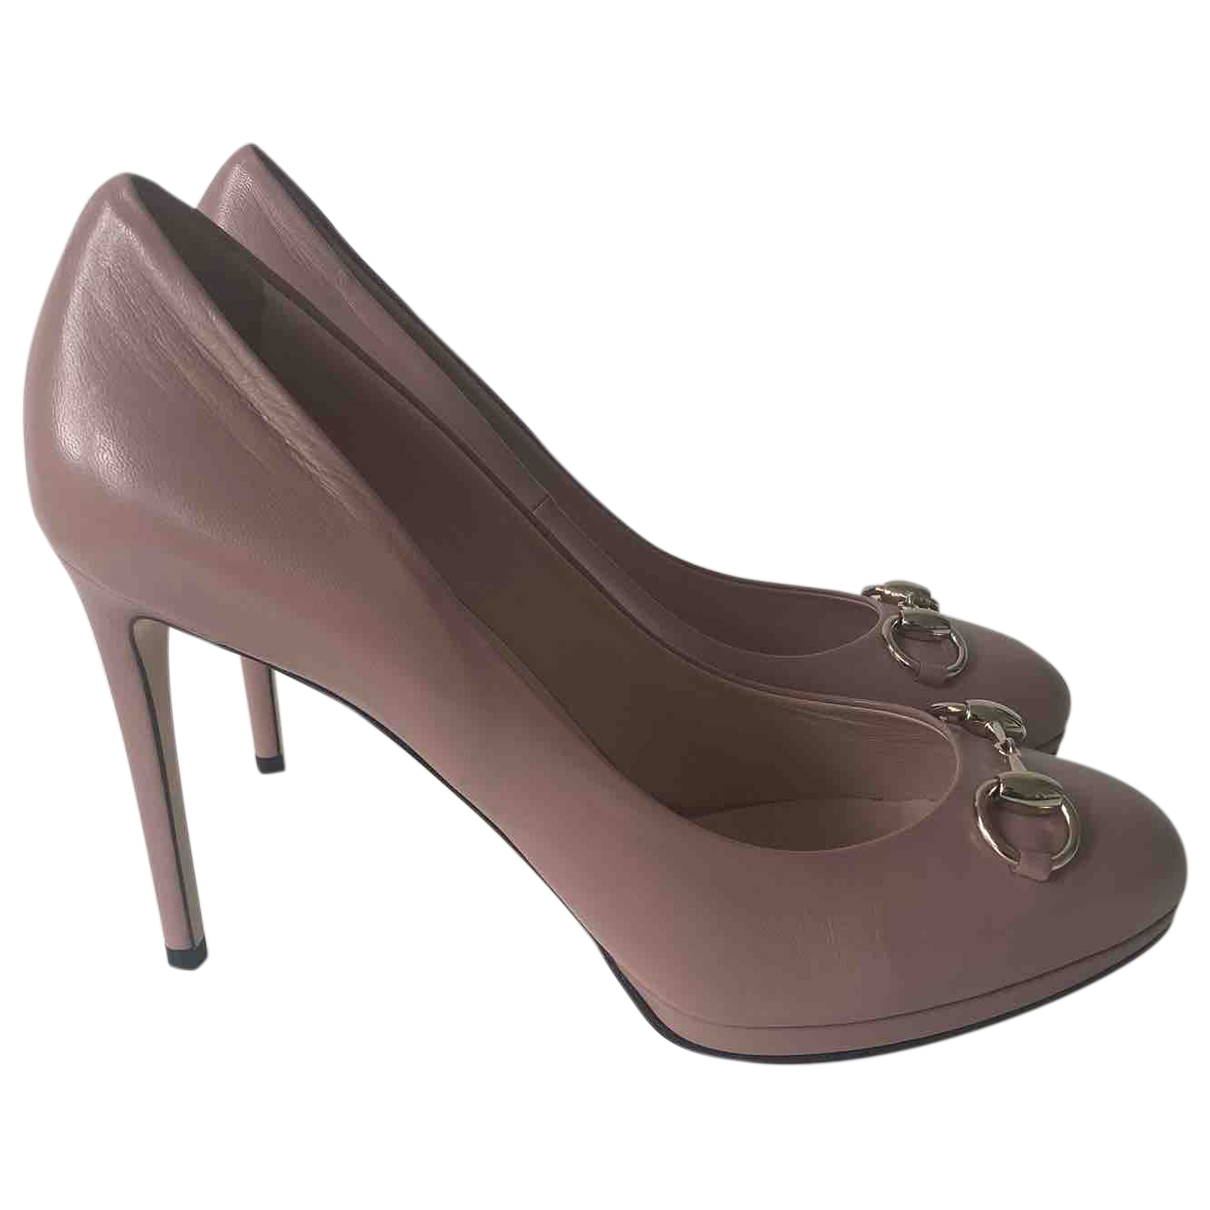 Gucci \N Pink Leather Heels for Women 41 EU